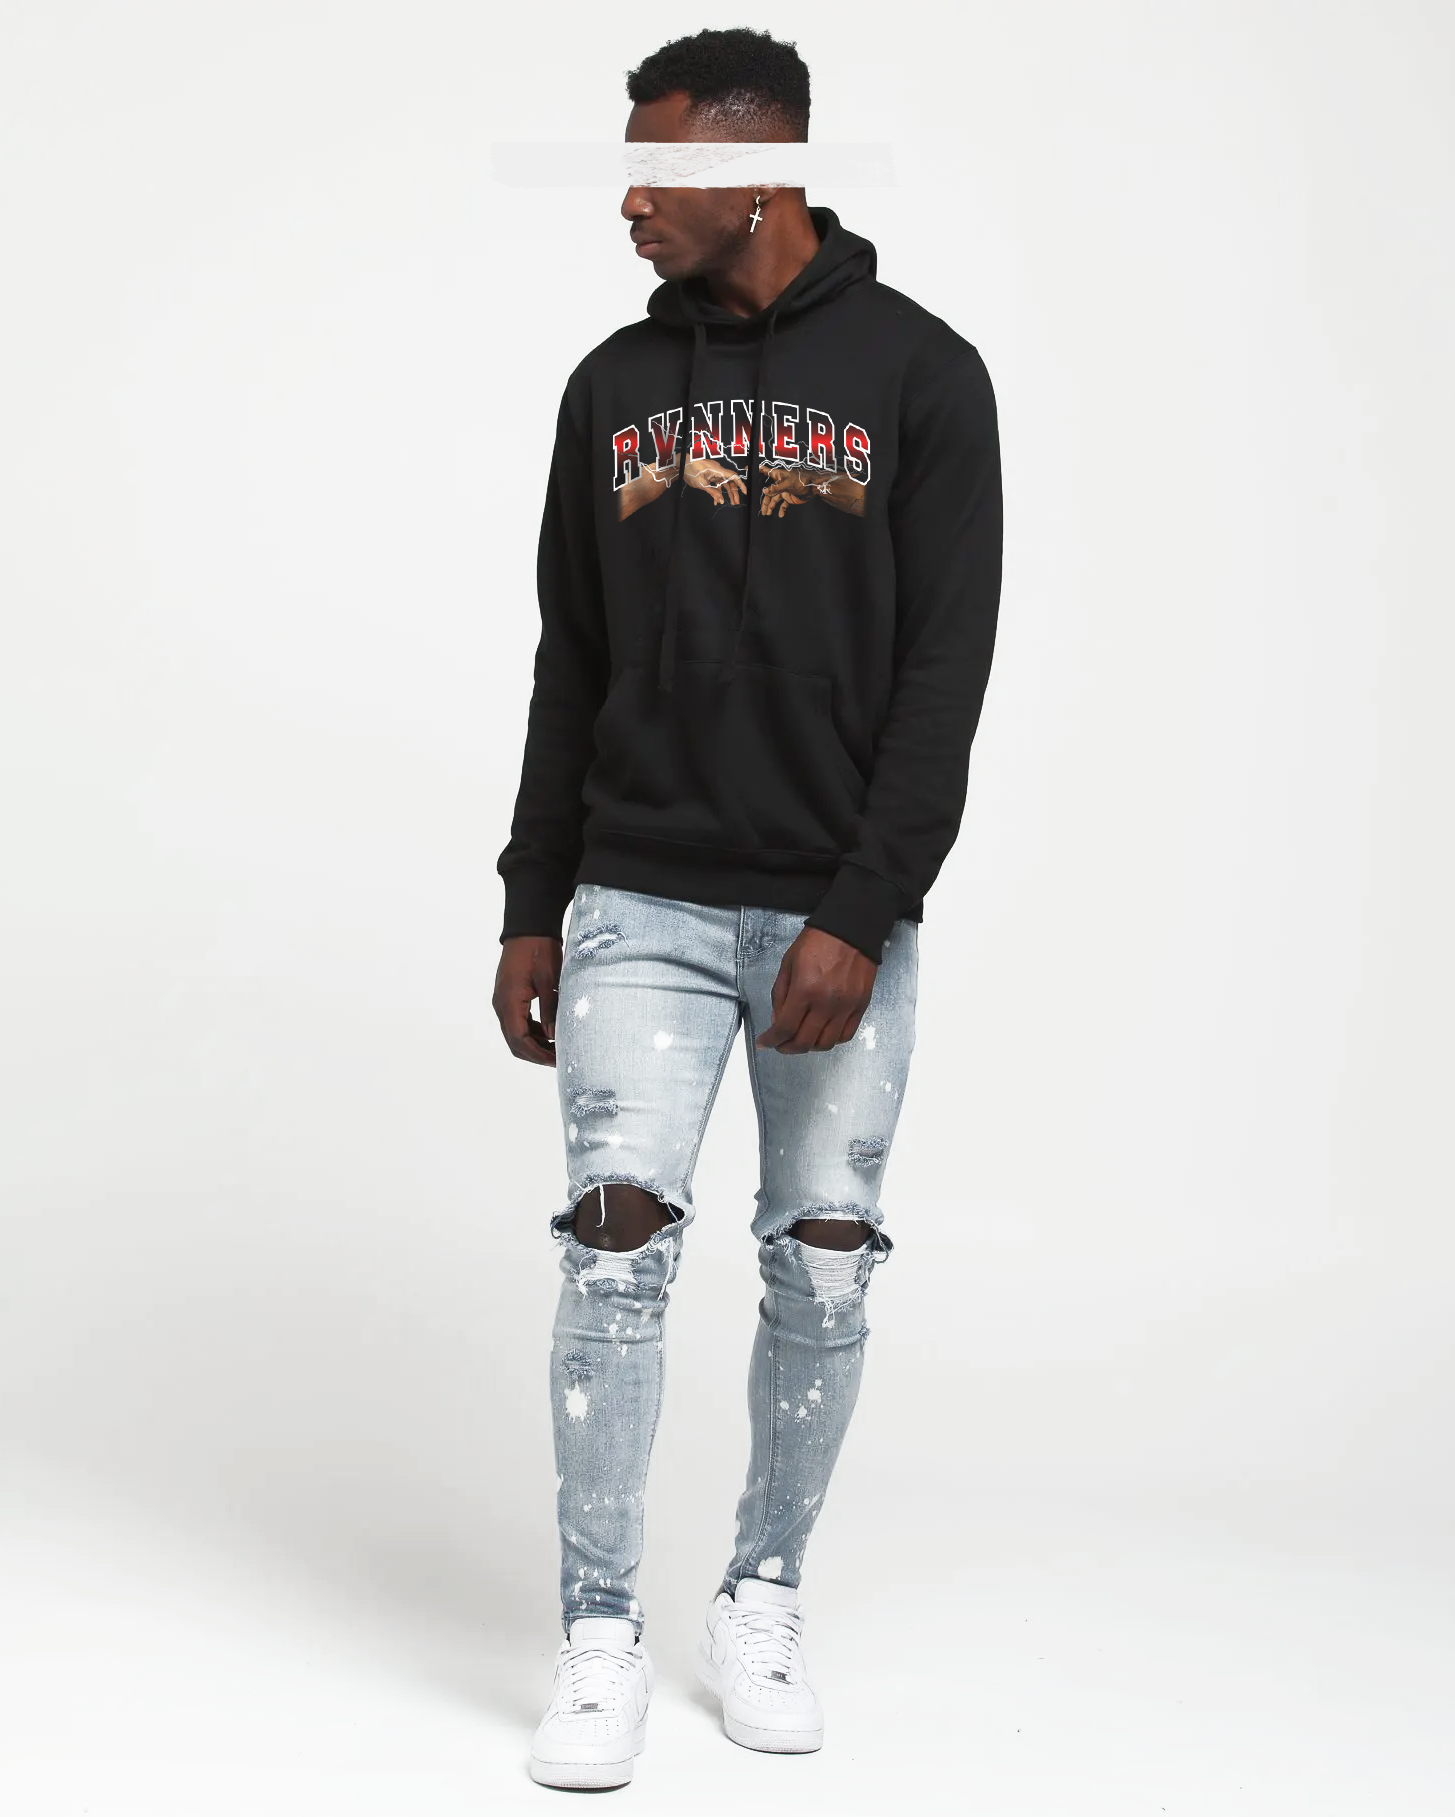 Rvnners Red Black Hoodie Front Full Body